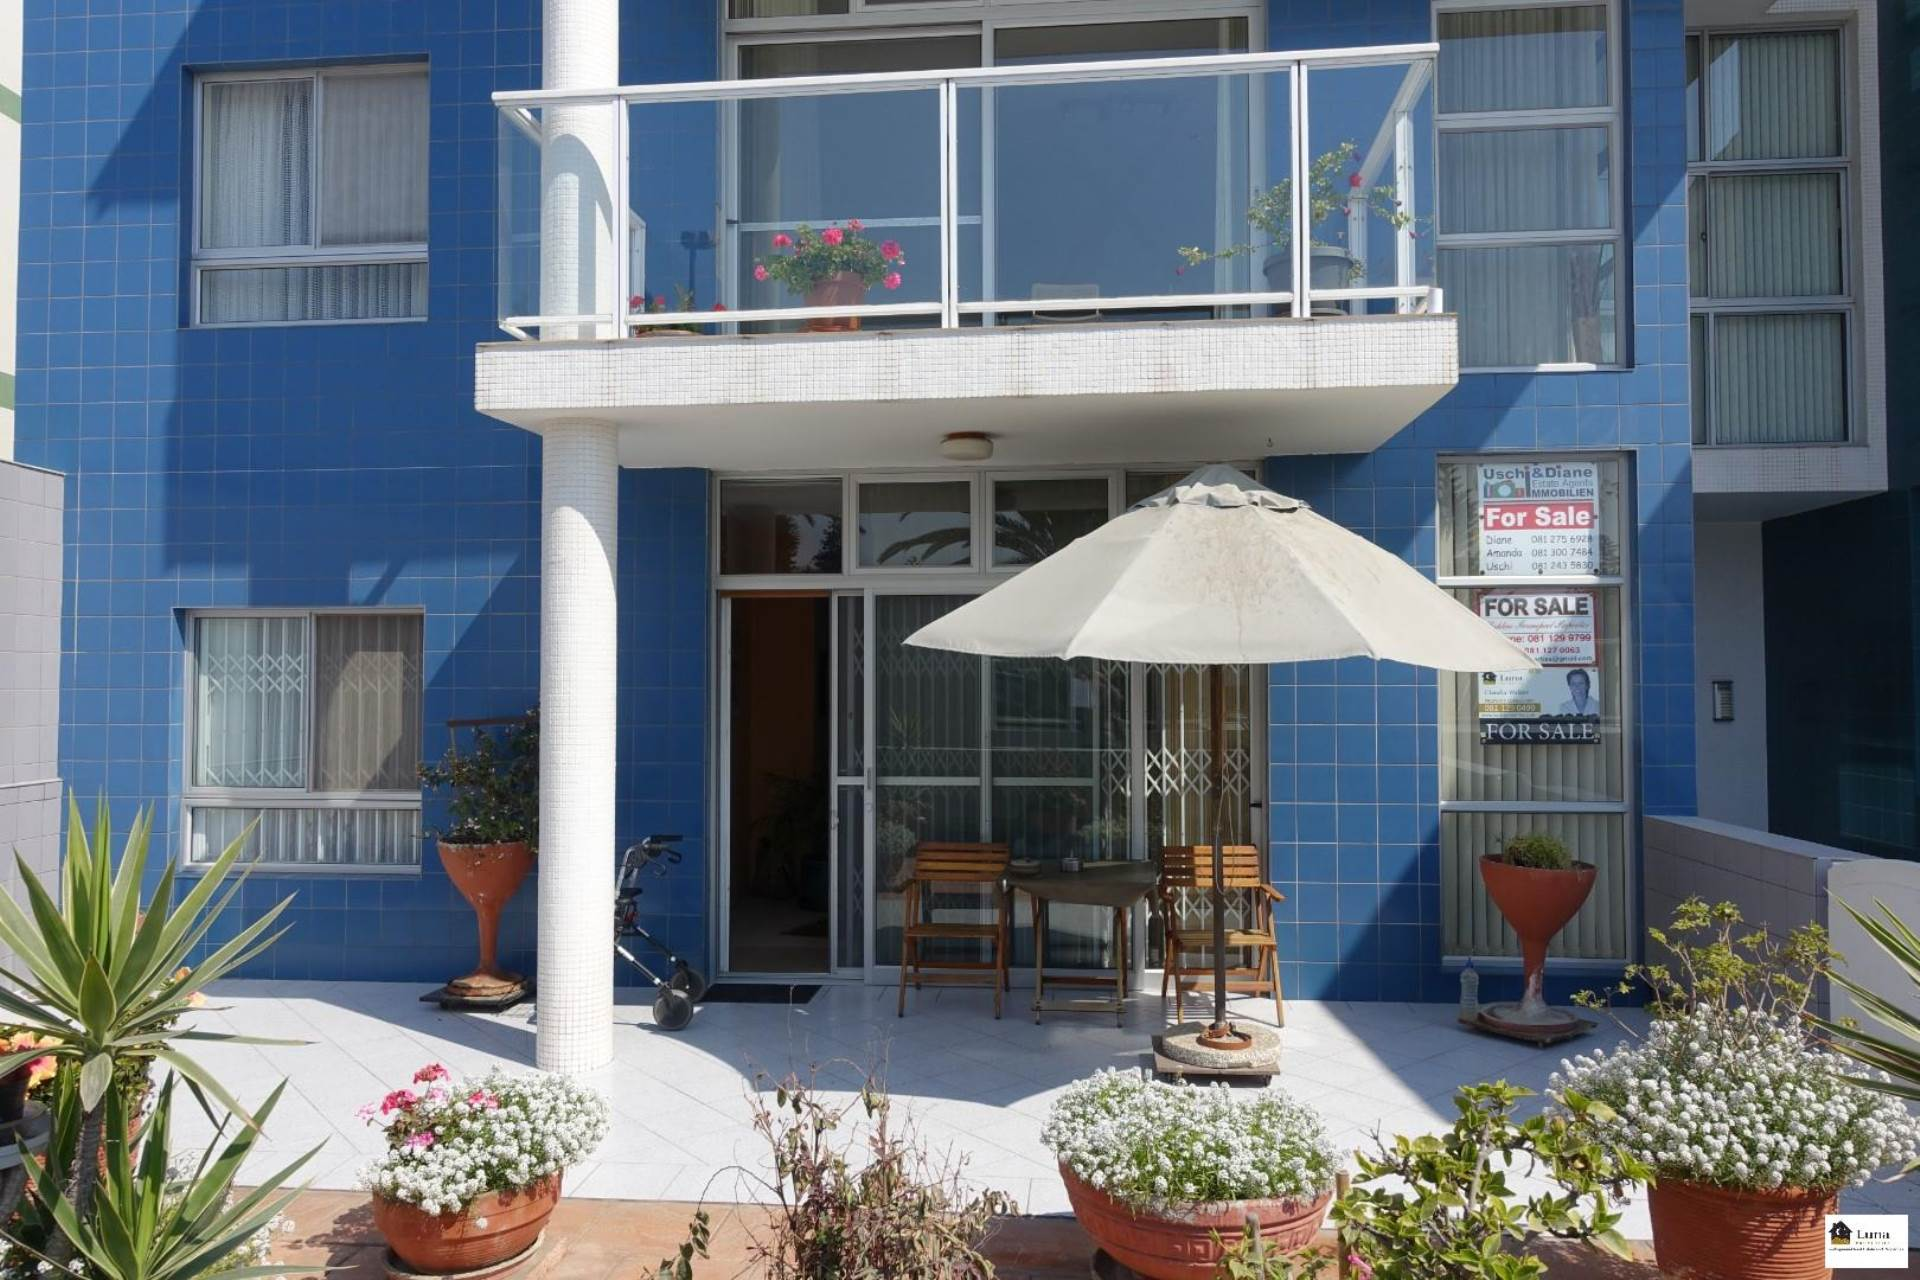 Namibia Immobilien Apartment For Sale In Swakopmund Central Swakopmund Namibia For